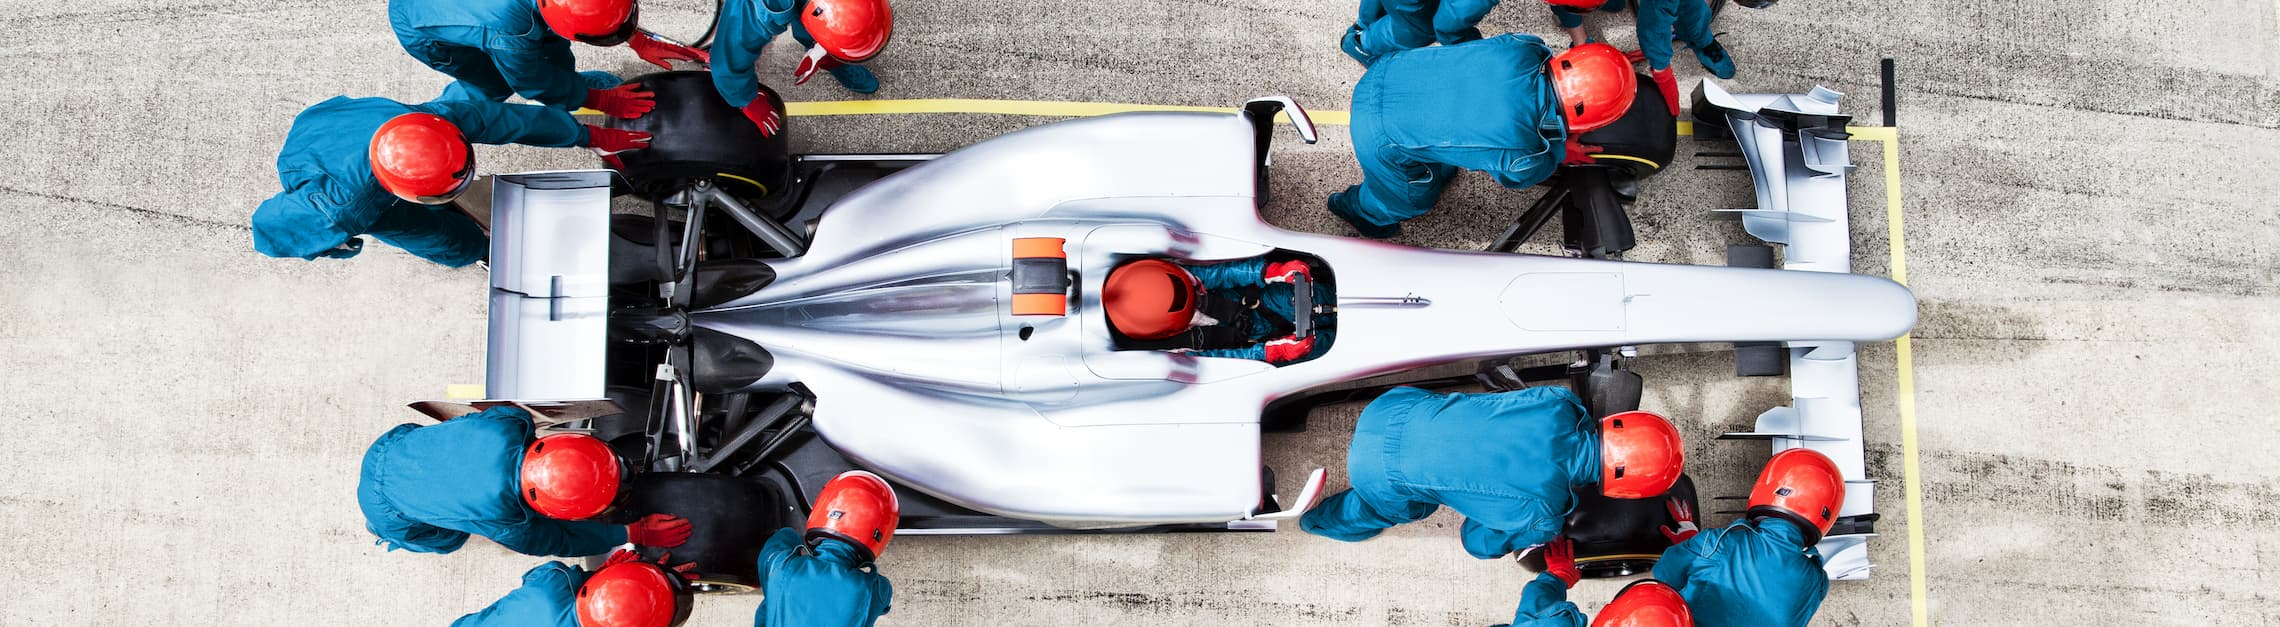 Pit crew attending all four corners of a Formula 1 car